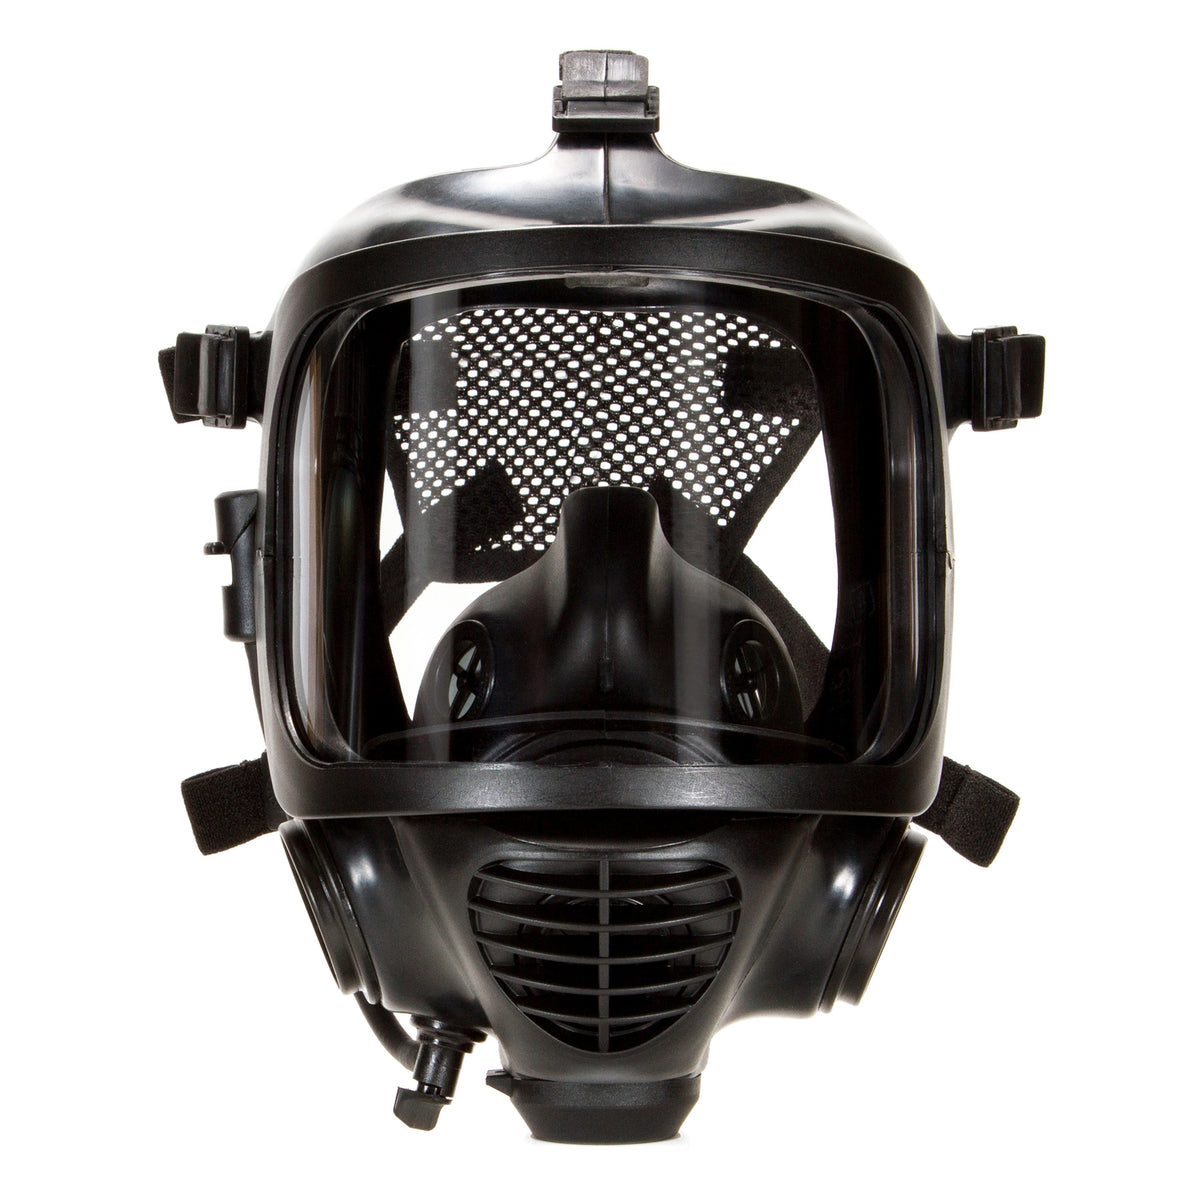 Mira Safety CM-6M Tactical Gas Mask – Full Face Respirator for CBRN Defense